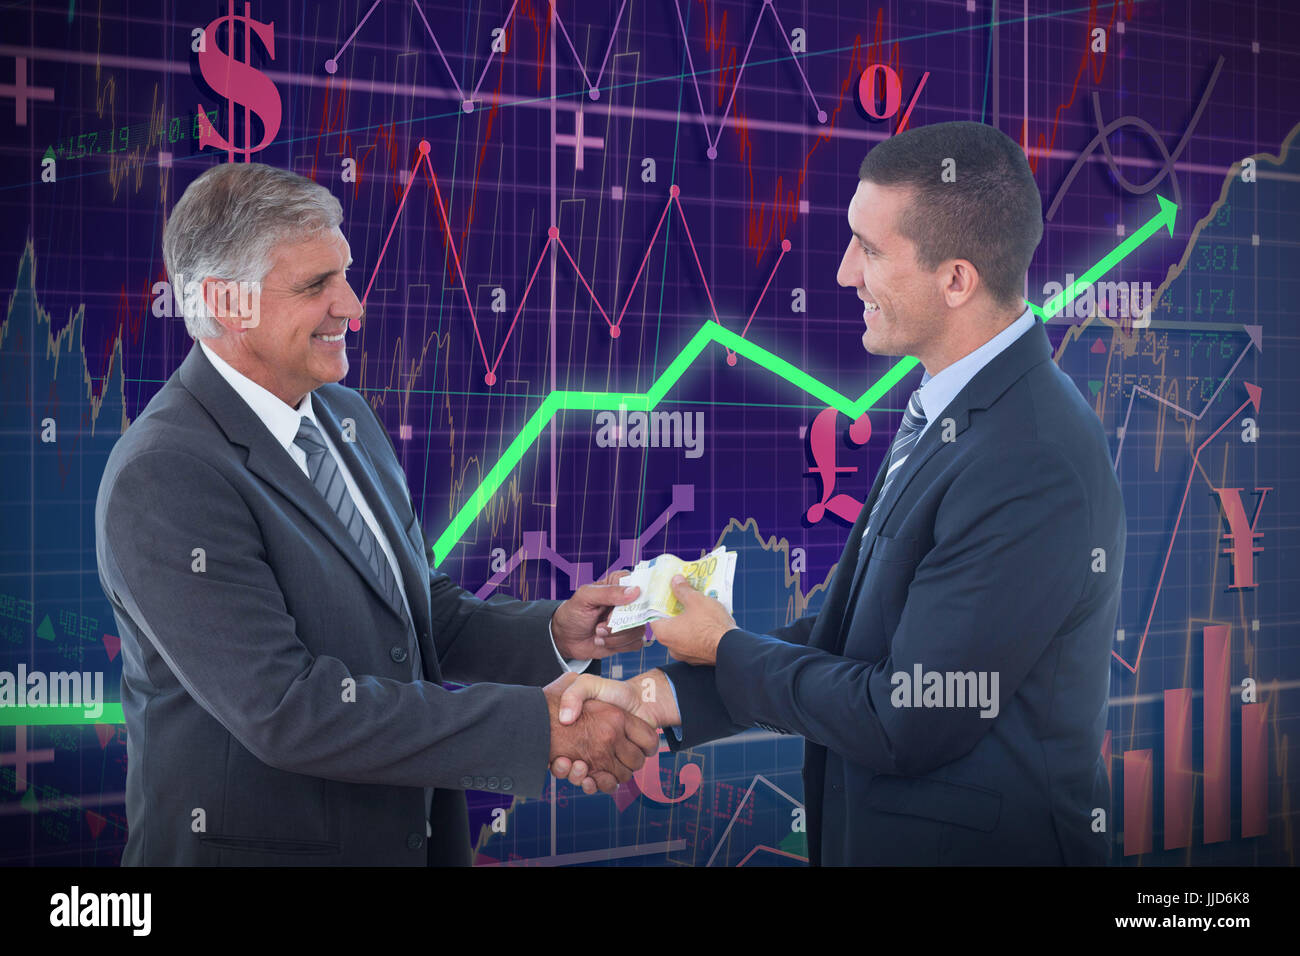 Businessmen shaking hands and exchanging money against red arrow - Stock Image